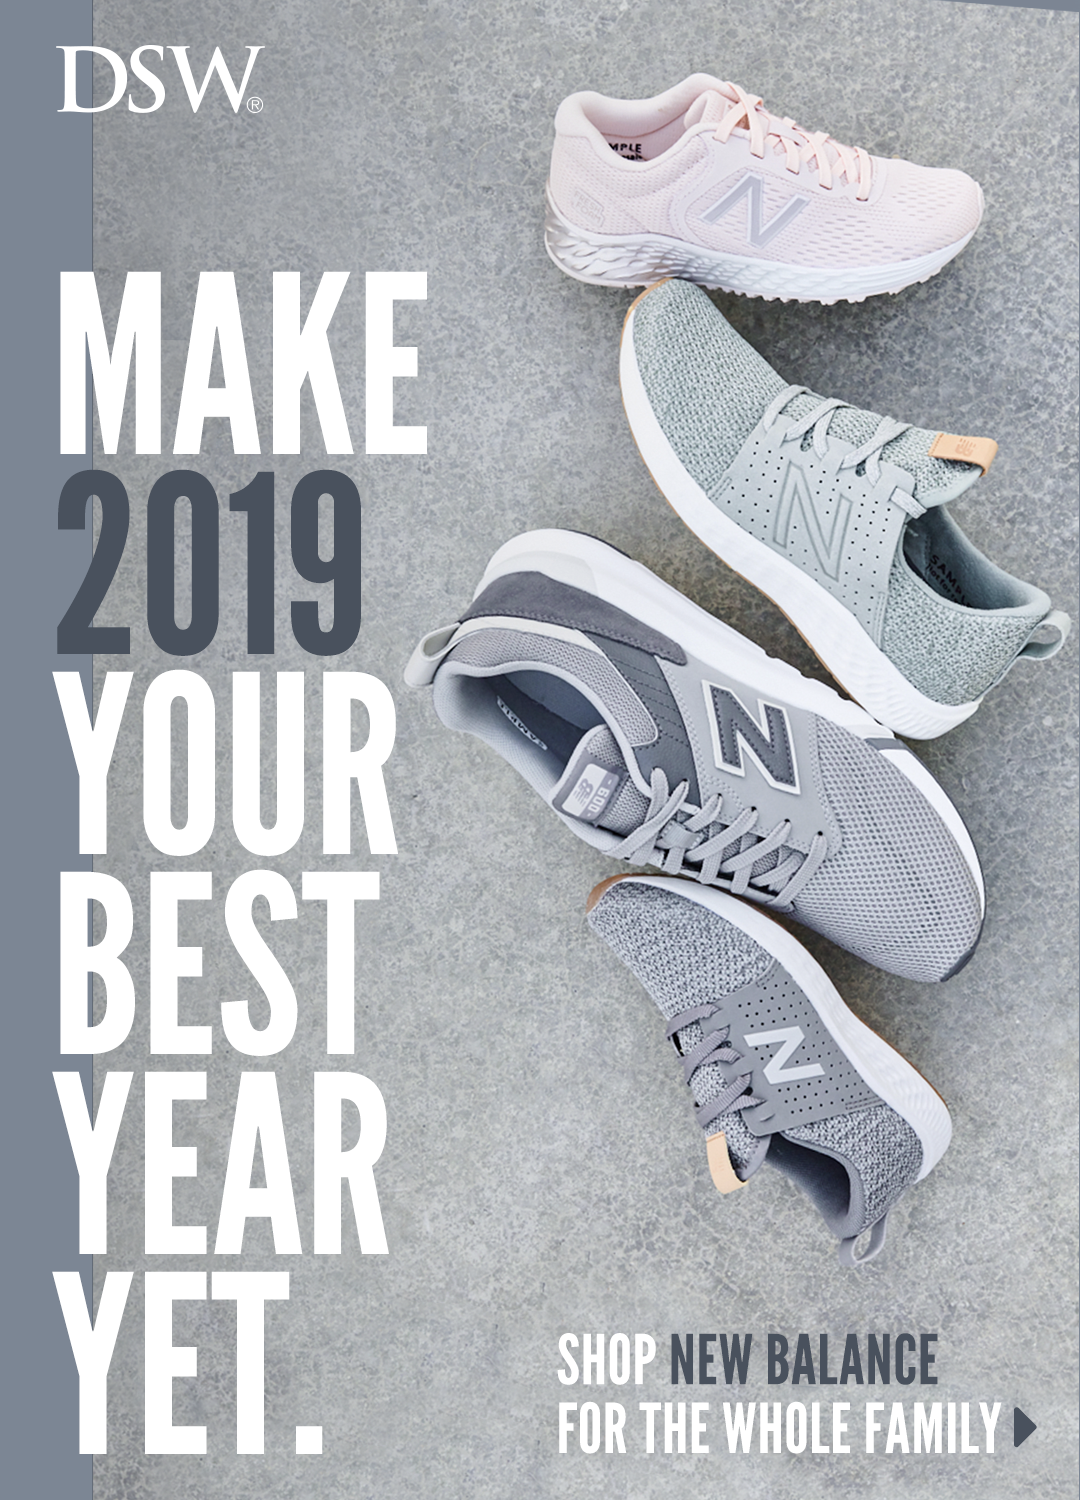 143da4acd8 Make 2019 your best year yet with sneakers from New Balance. At DSW ...